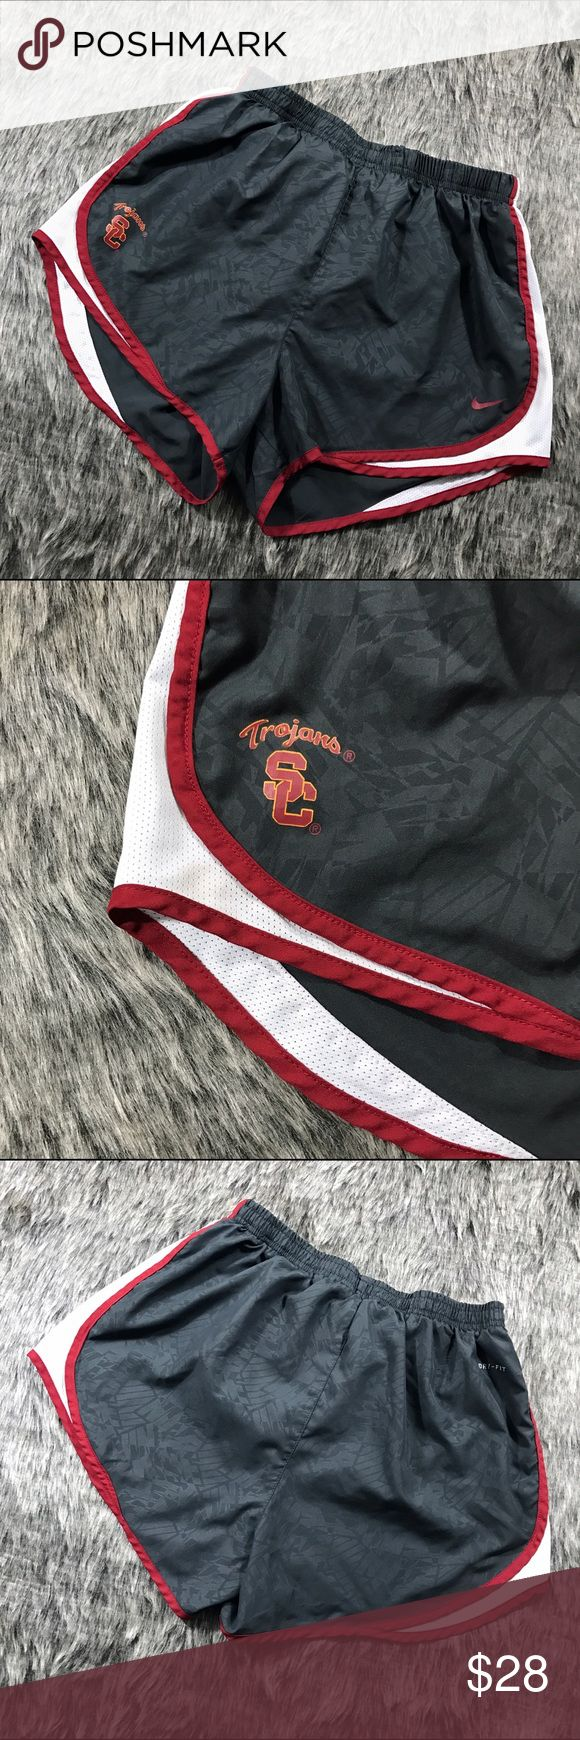 NIKE USC TROJANS Dri Fit Shorts Great preloved condition. Jogging Shorts with underwear insert. Nike Shorts